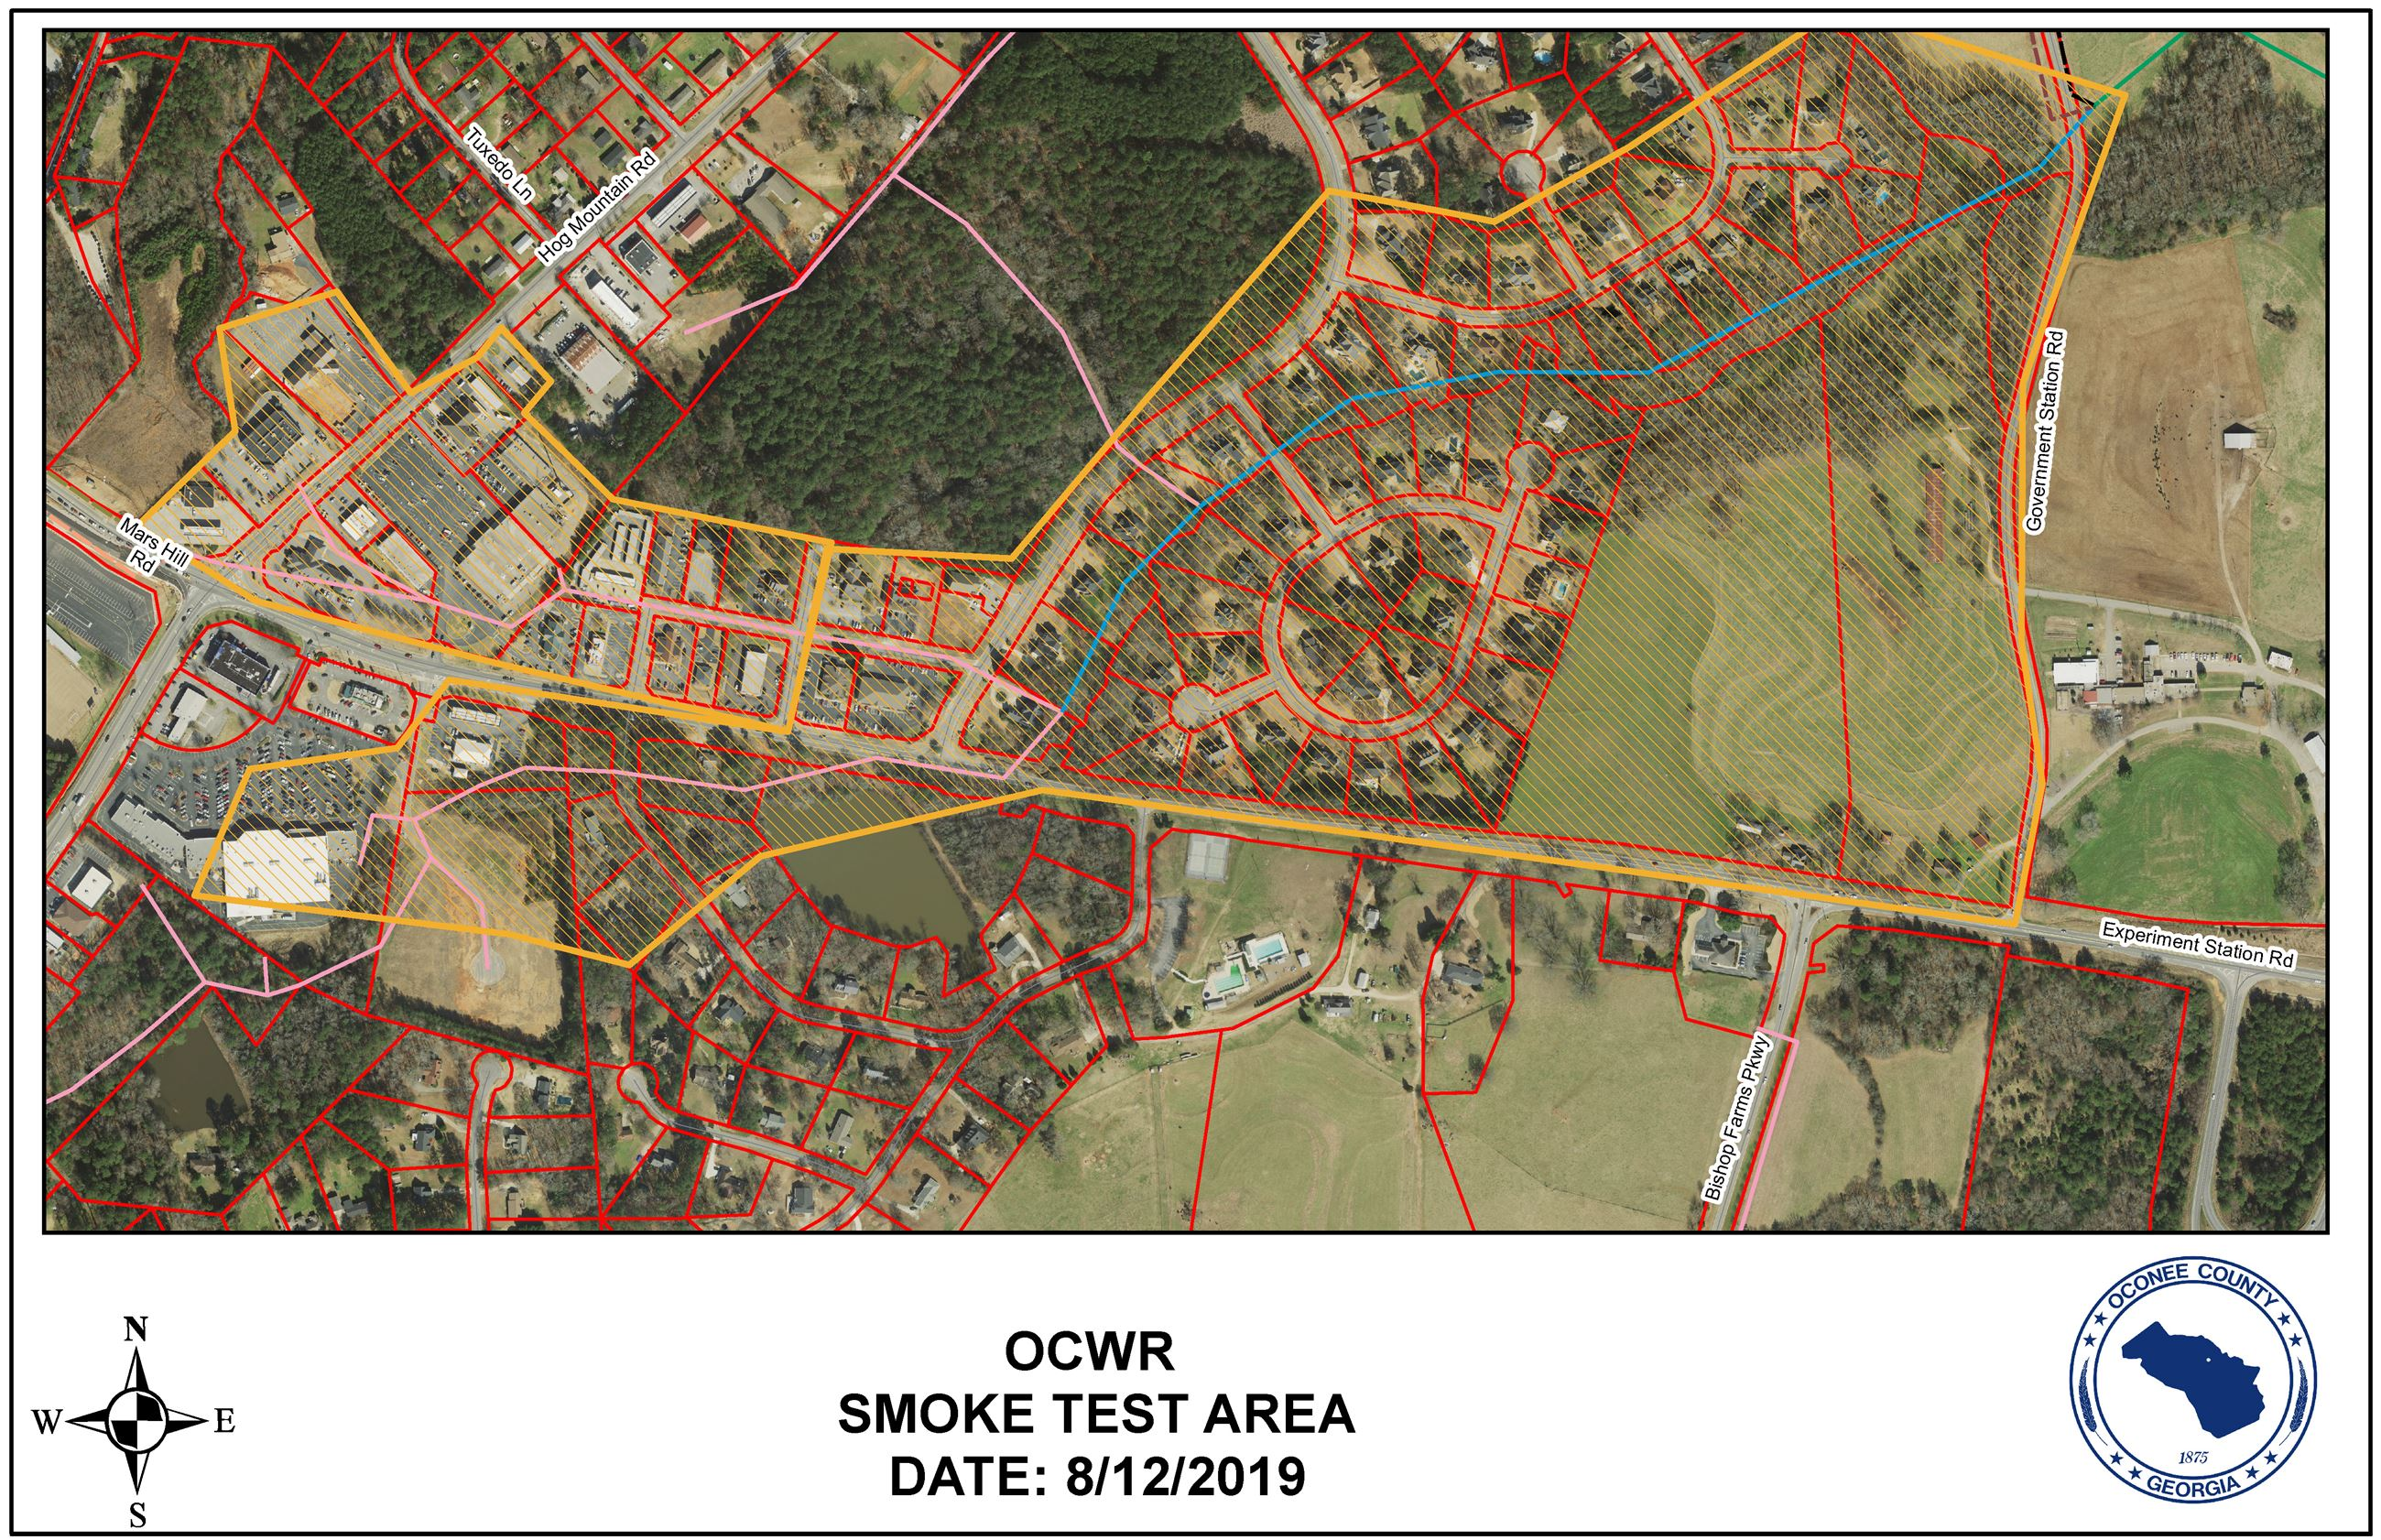 Smoke Test Area Map Aerial View 8-12-2019  Opens in new window